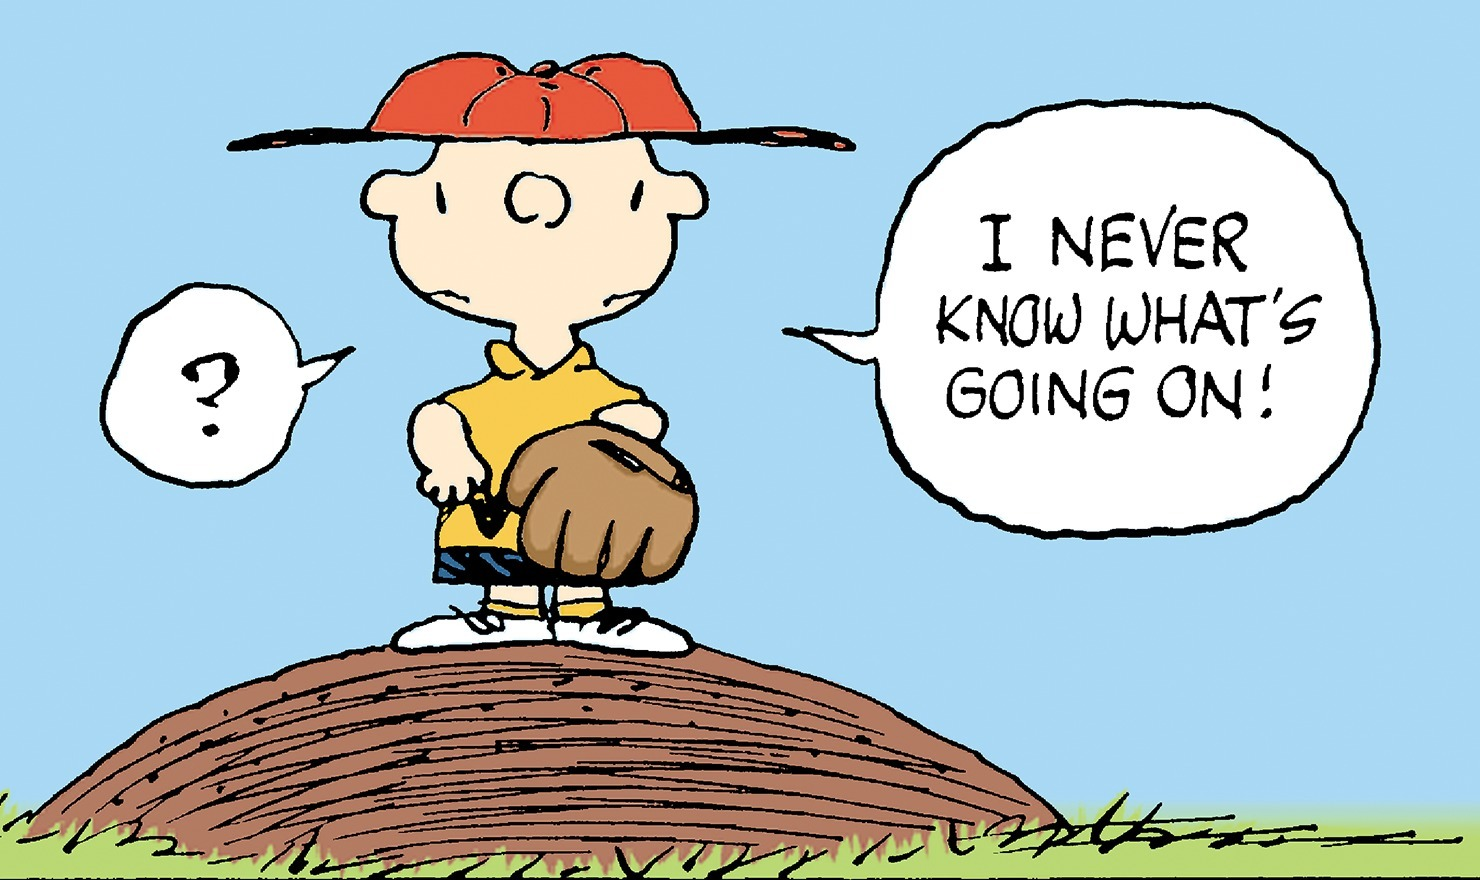 Peanuts: At the Ballpark